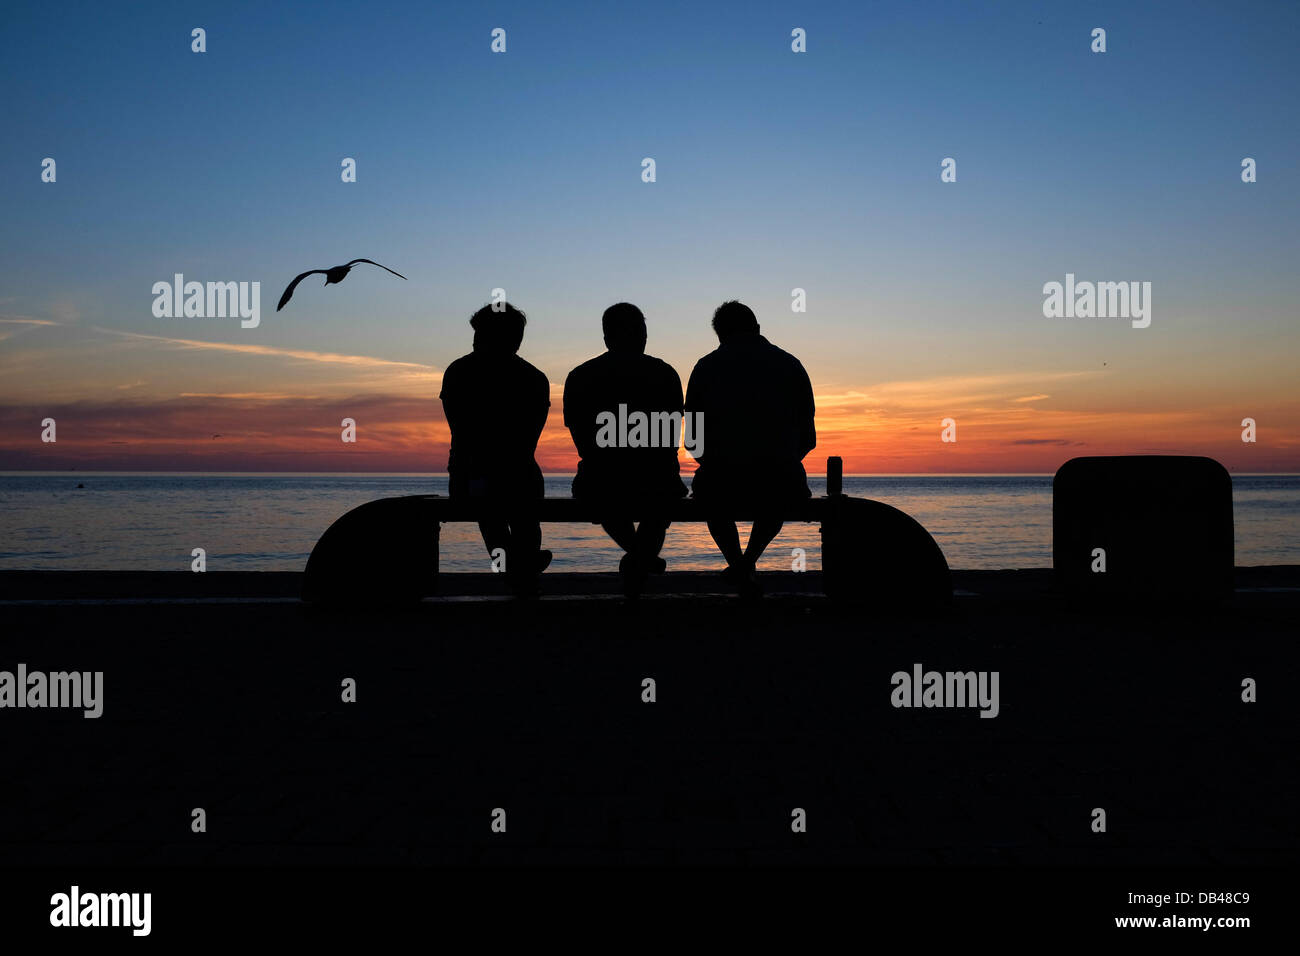 Aberystwyth, UK. 23rd July, 2013. Three men in silhouette sitting on a bench watching the sunset at Aberystwyth Stock Photo